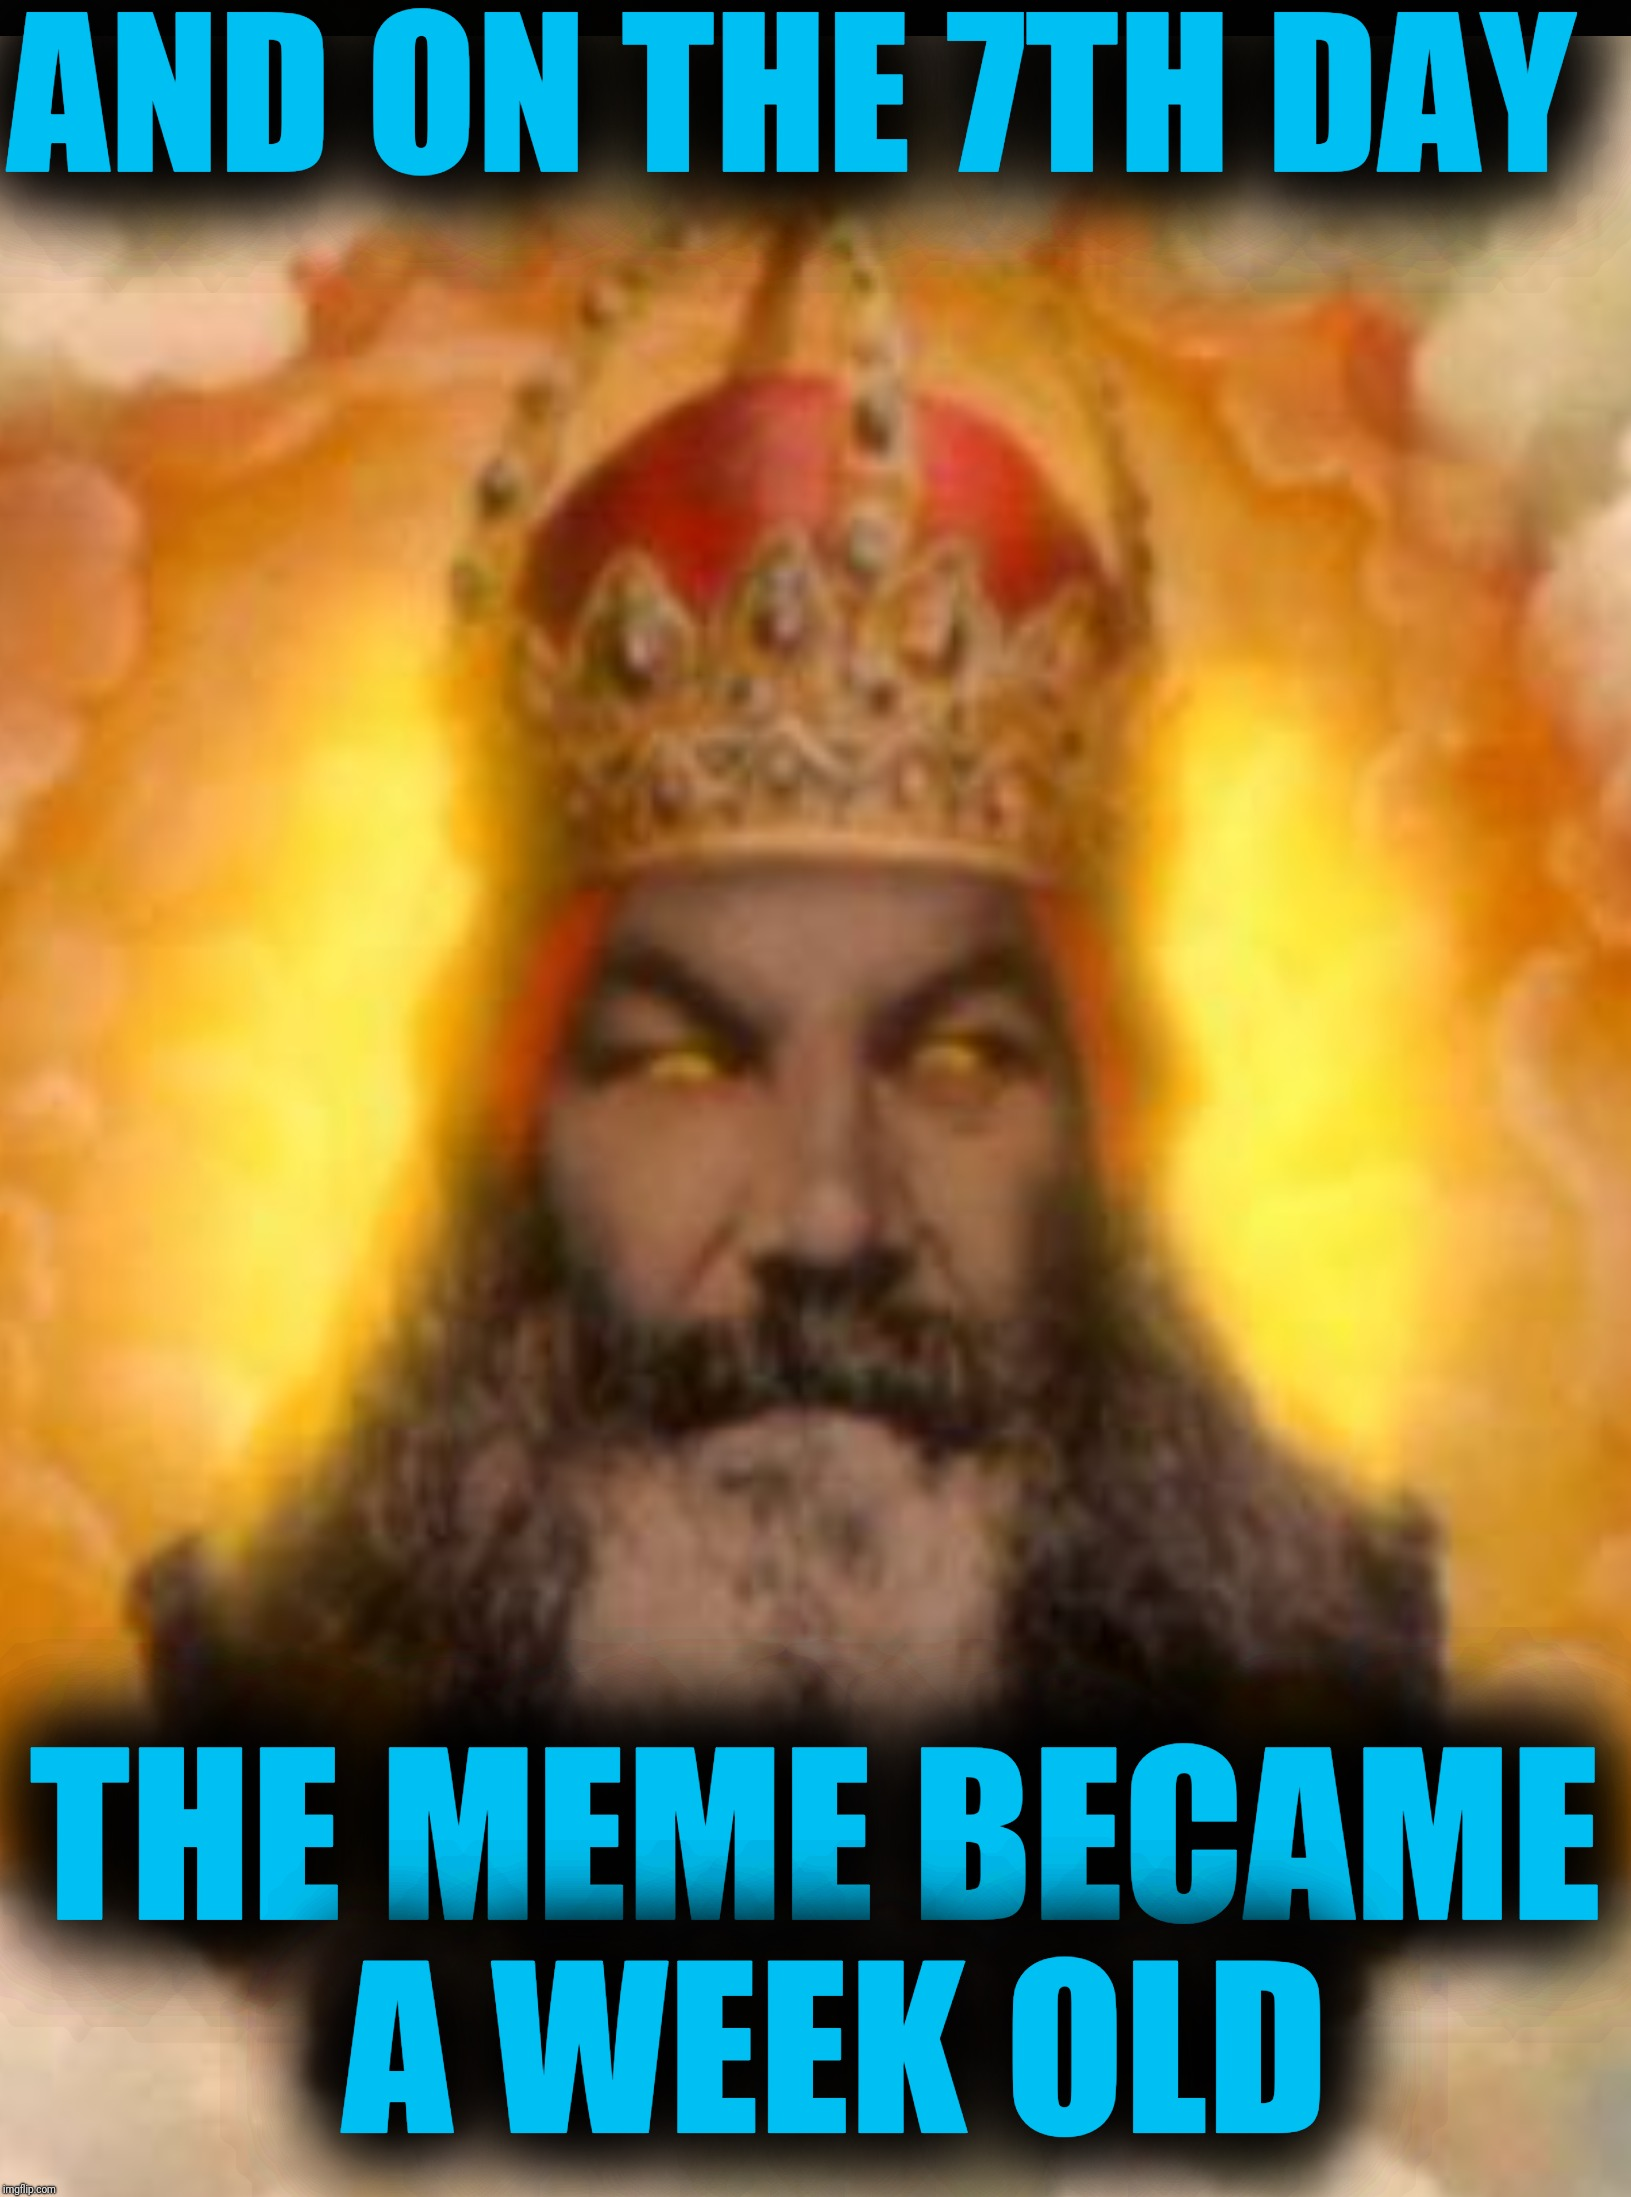 AND ON THE 7TH DAY THE MEME BECAME A WEEK OLD | made w/ Imgflip meme maker